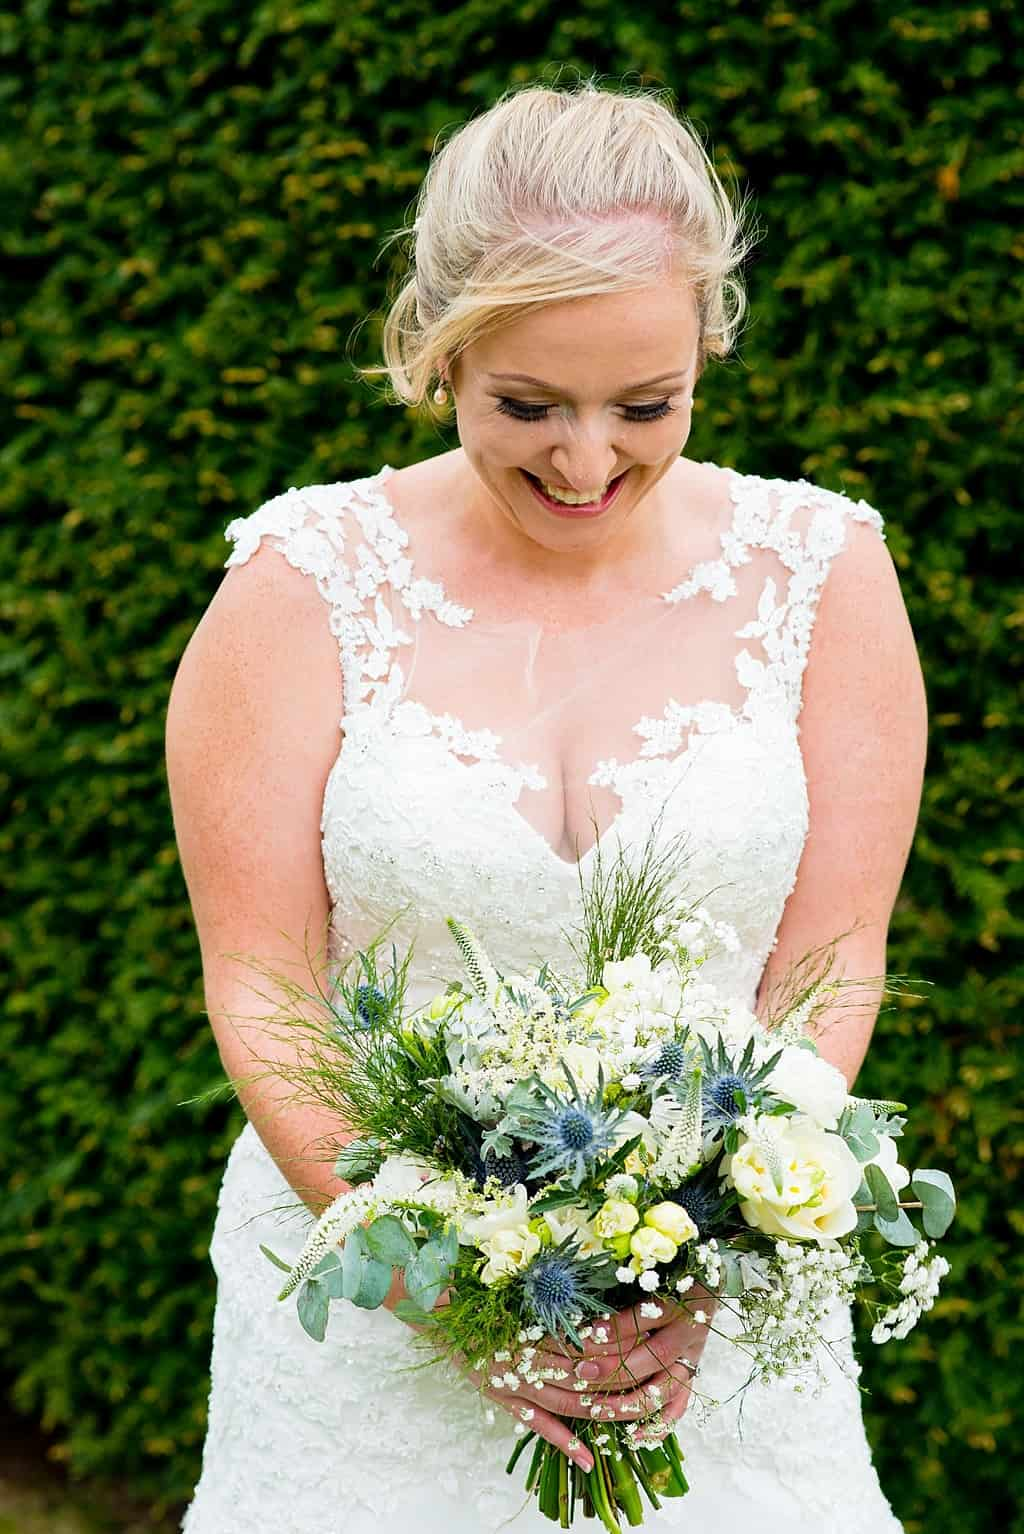 Beautiful bride with bouquet of white and green flowers